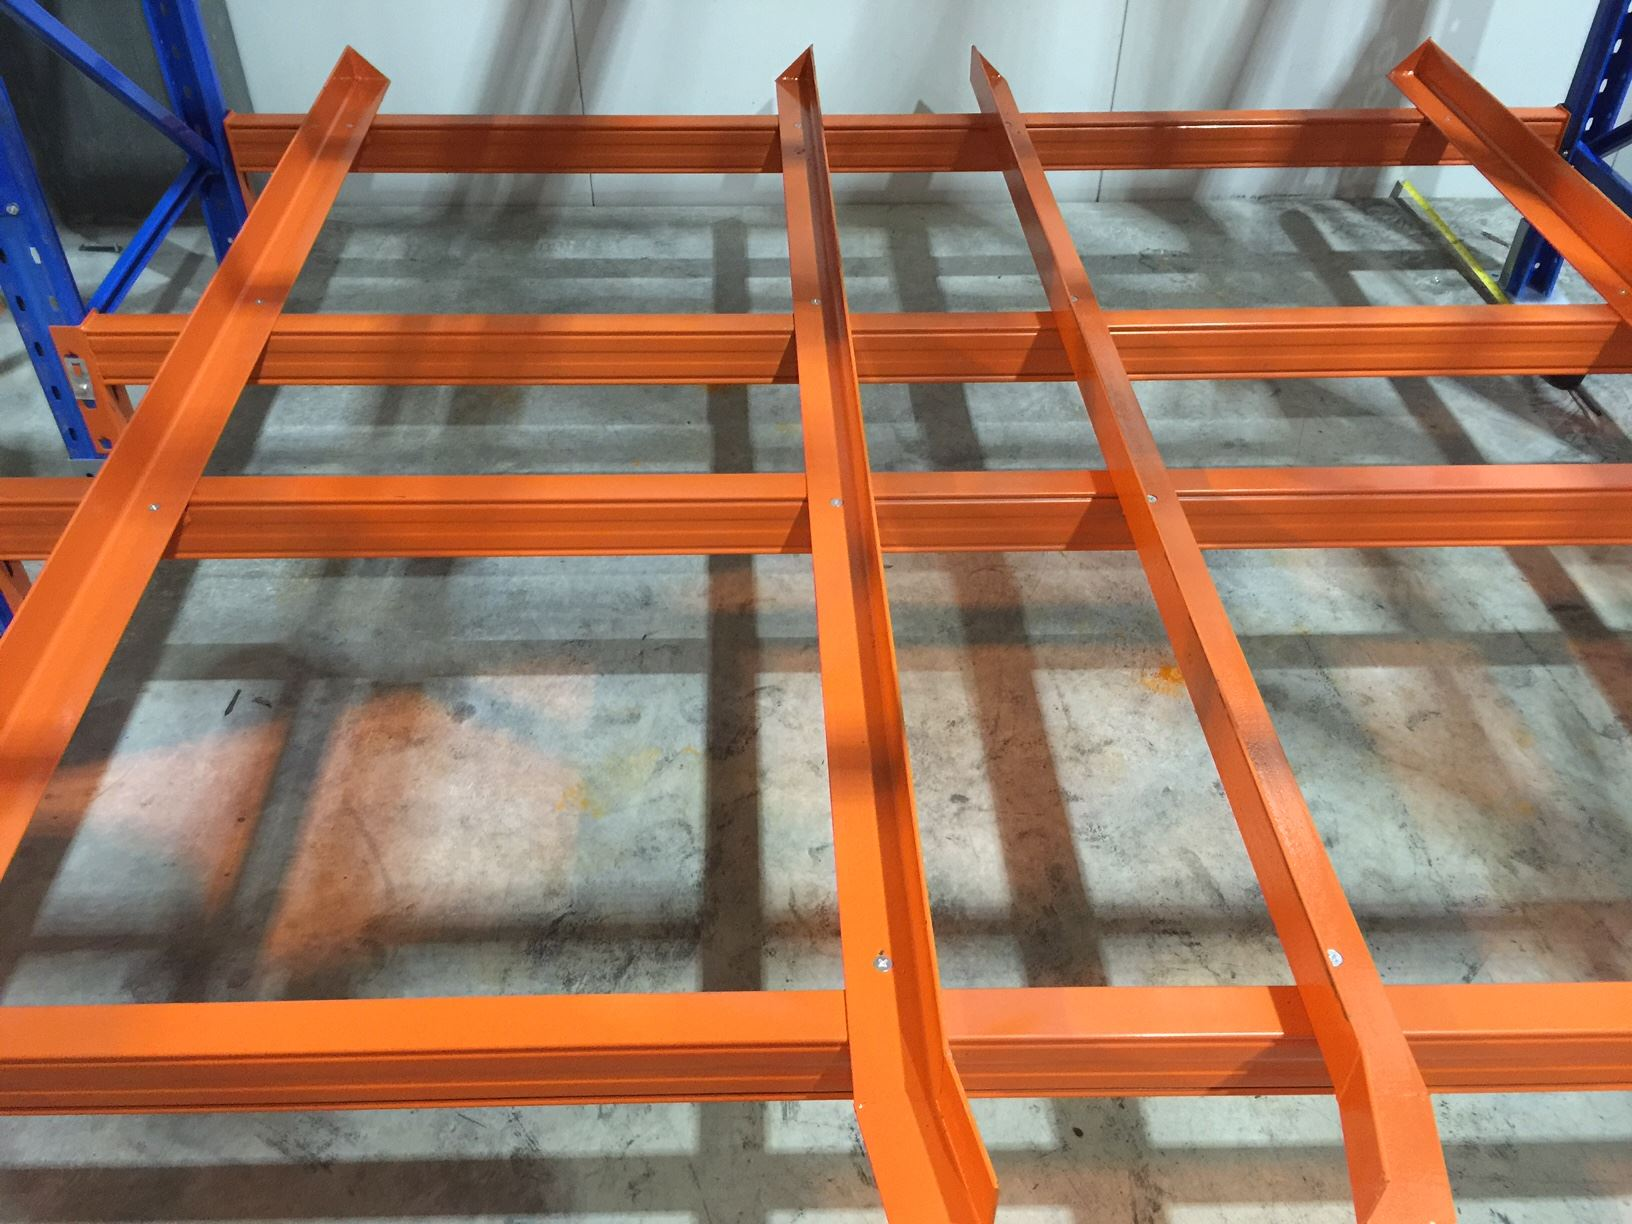 orange bottom plat of goods shelf